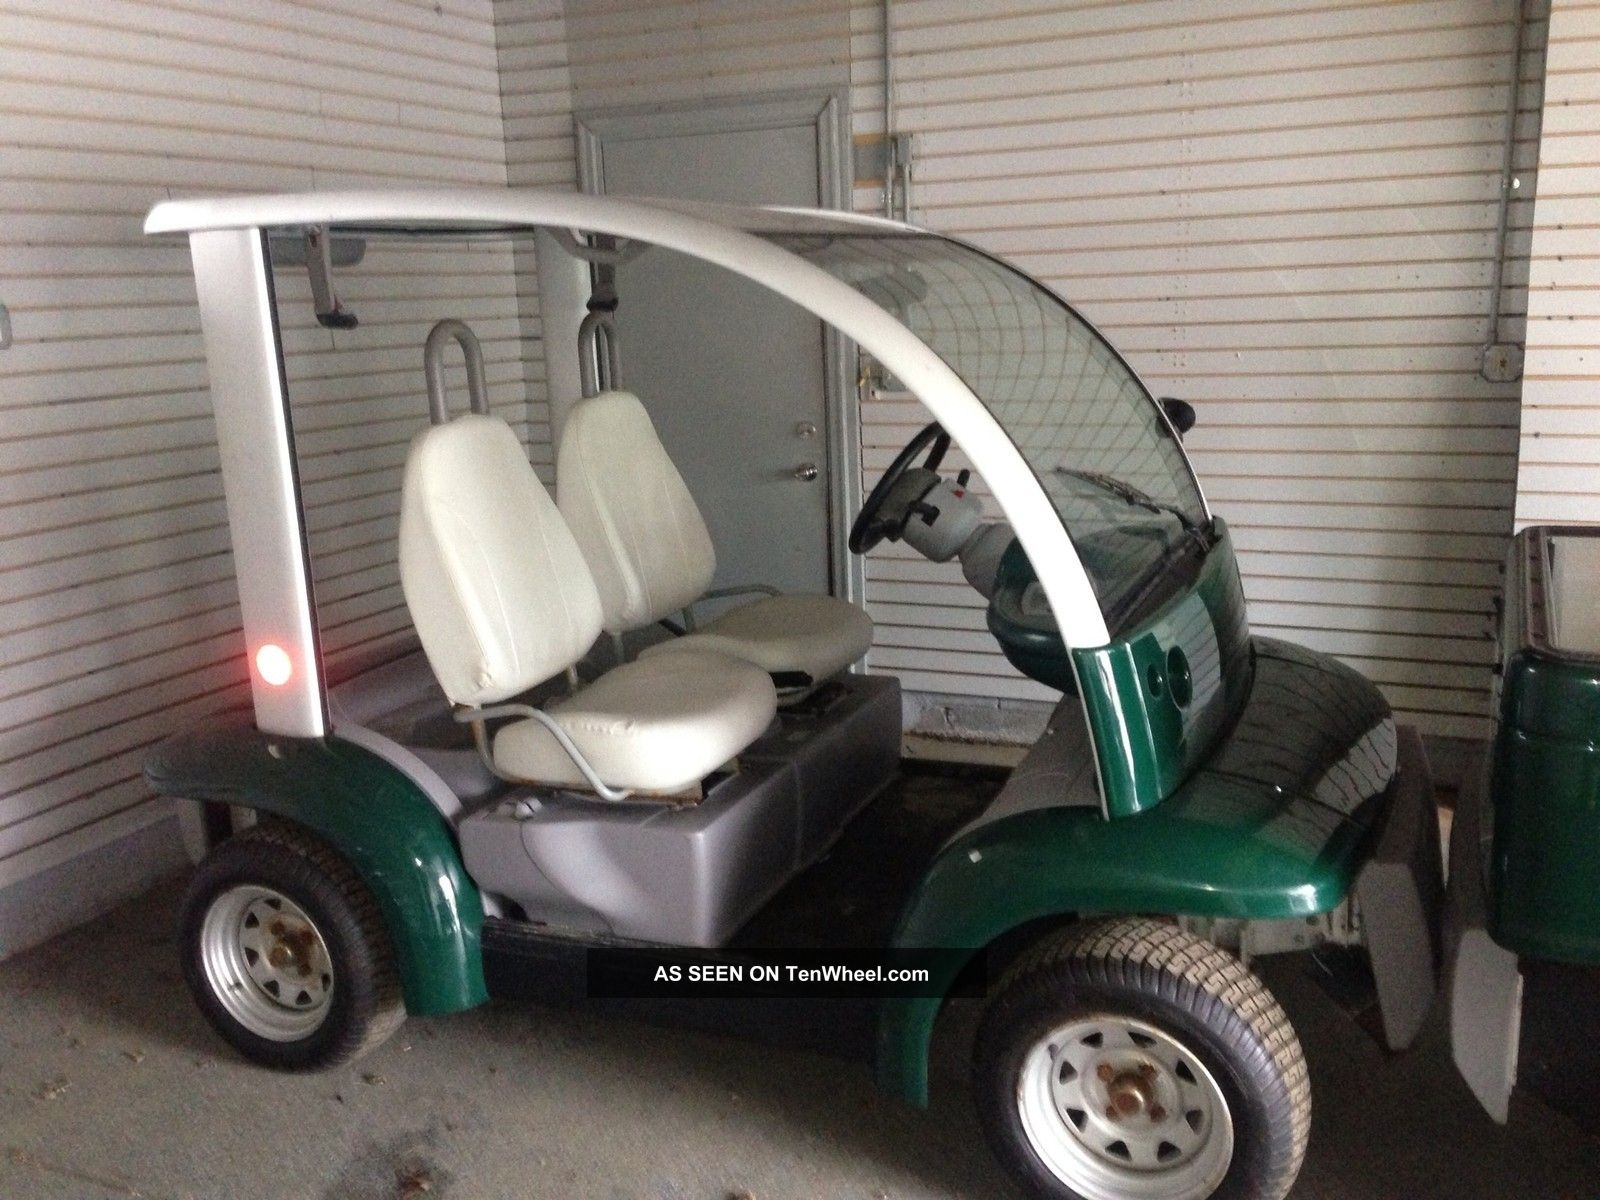 2002 Ford Think Electric Street Legal Car Will Trade Has Nj Title Other photo